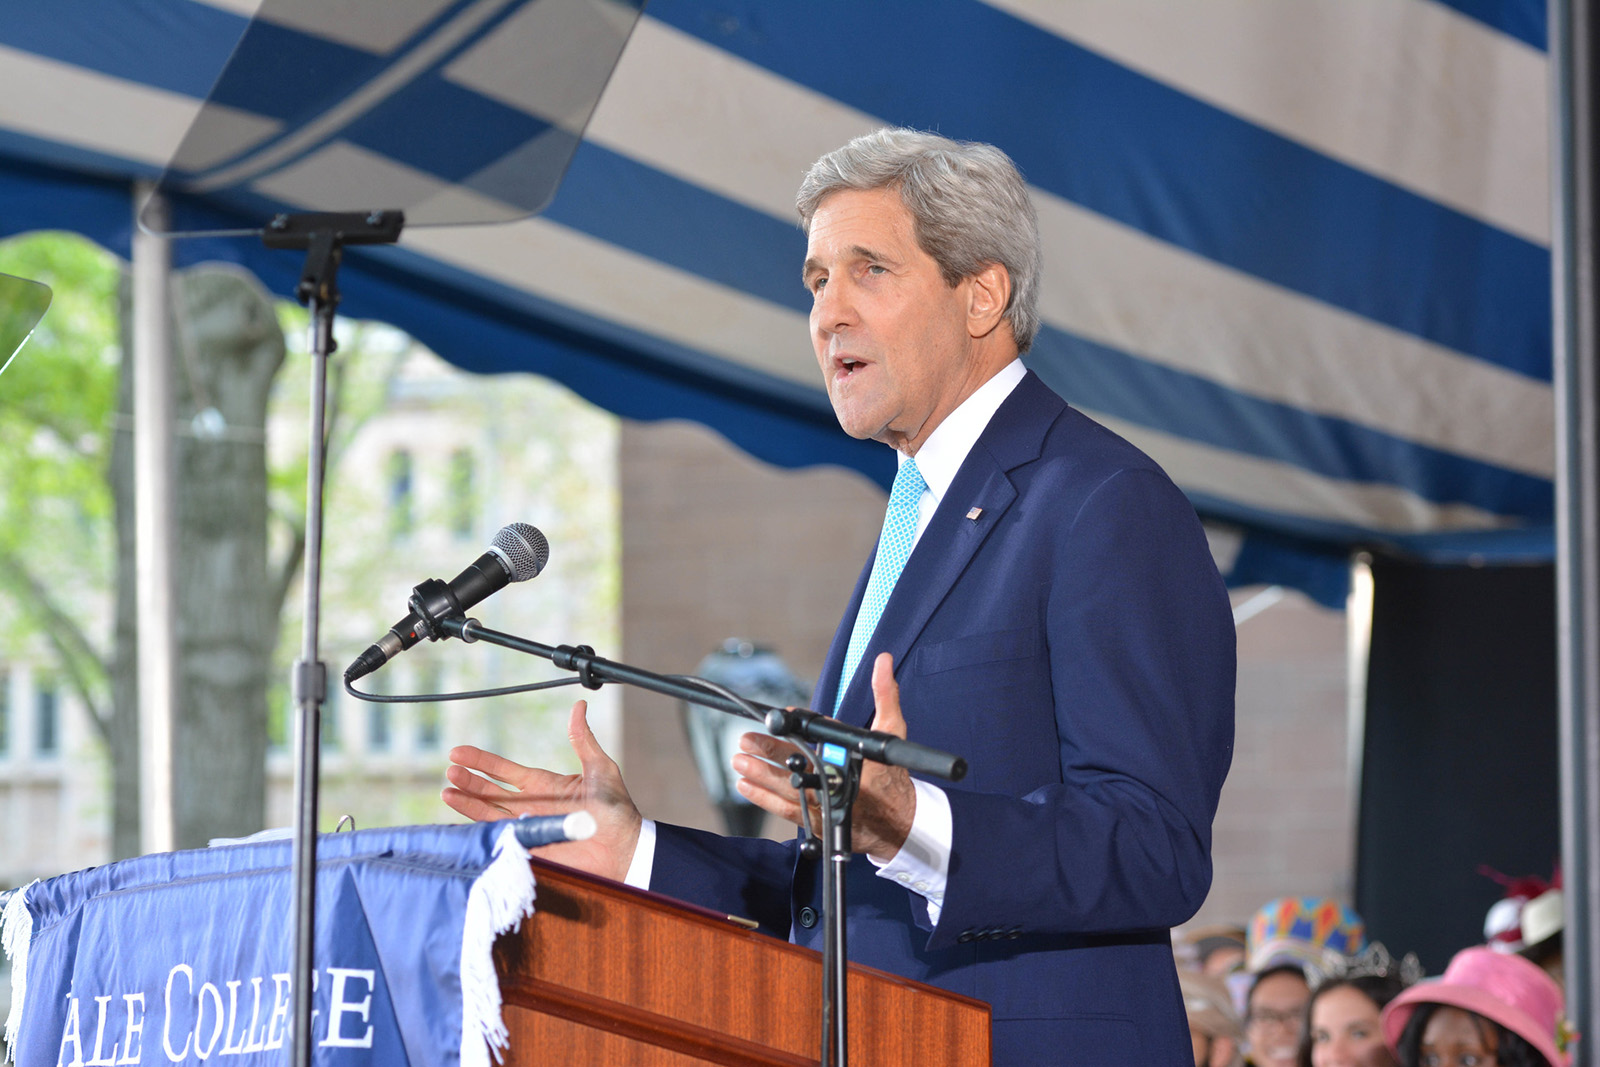 Secretary John Kerry joins Yale as Distinguished Fellow for Global Affairs